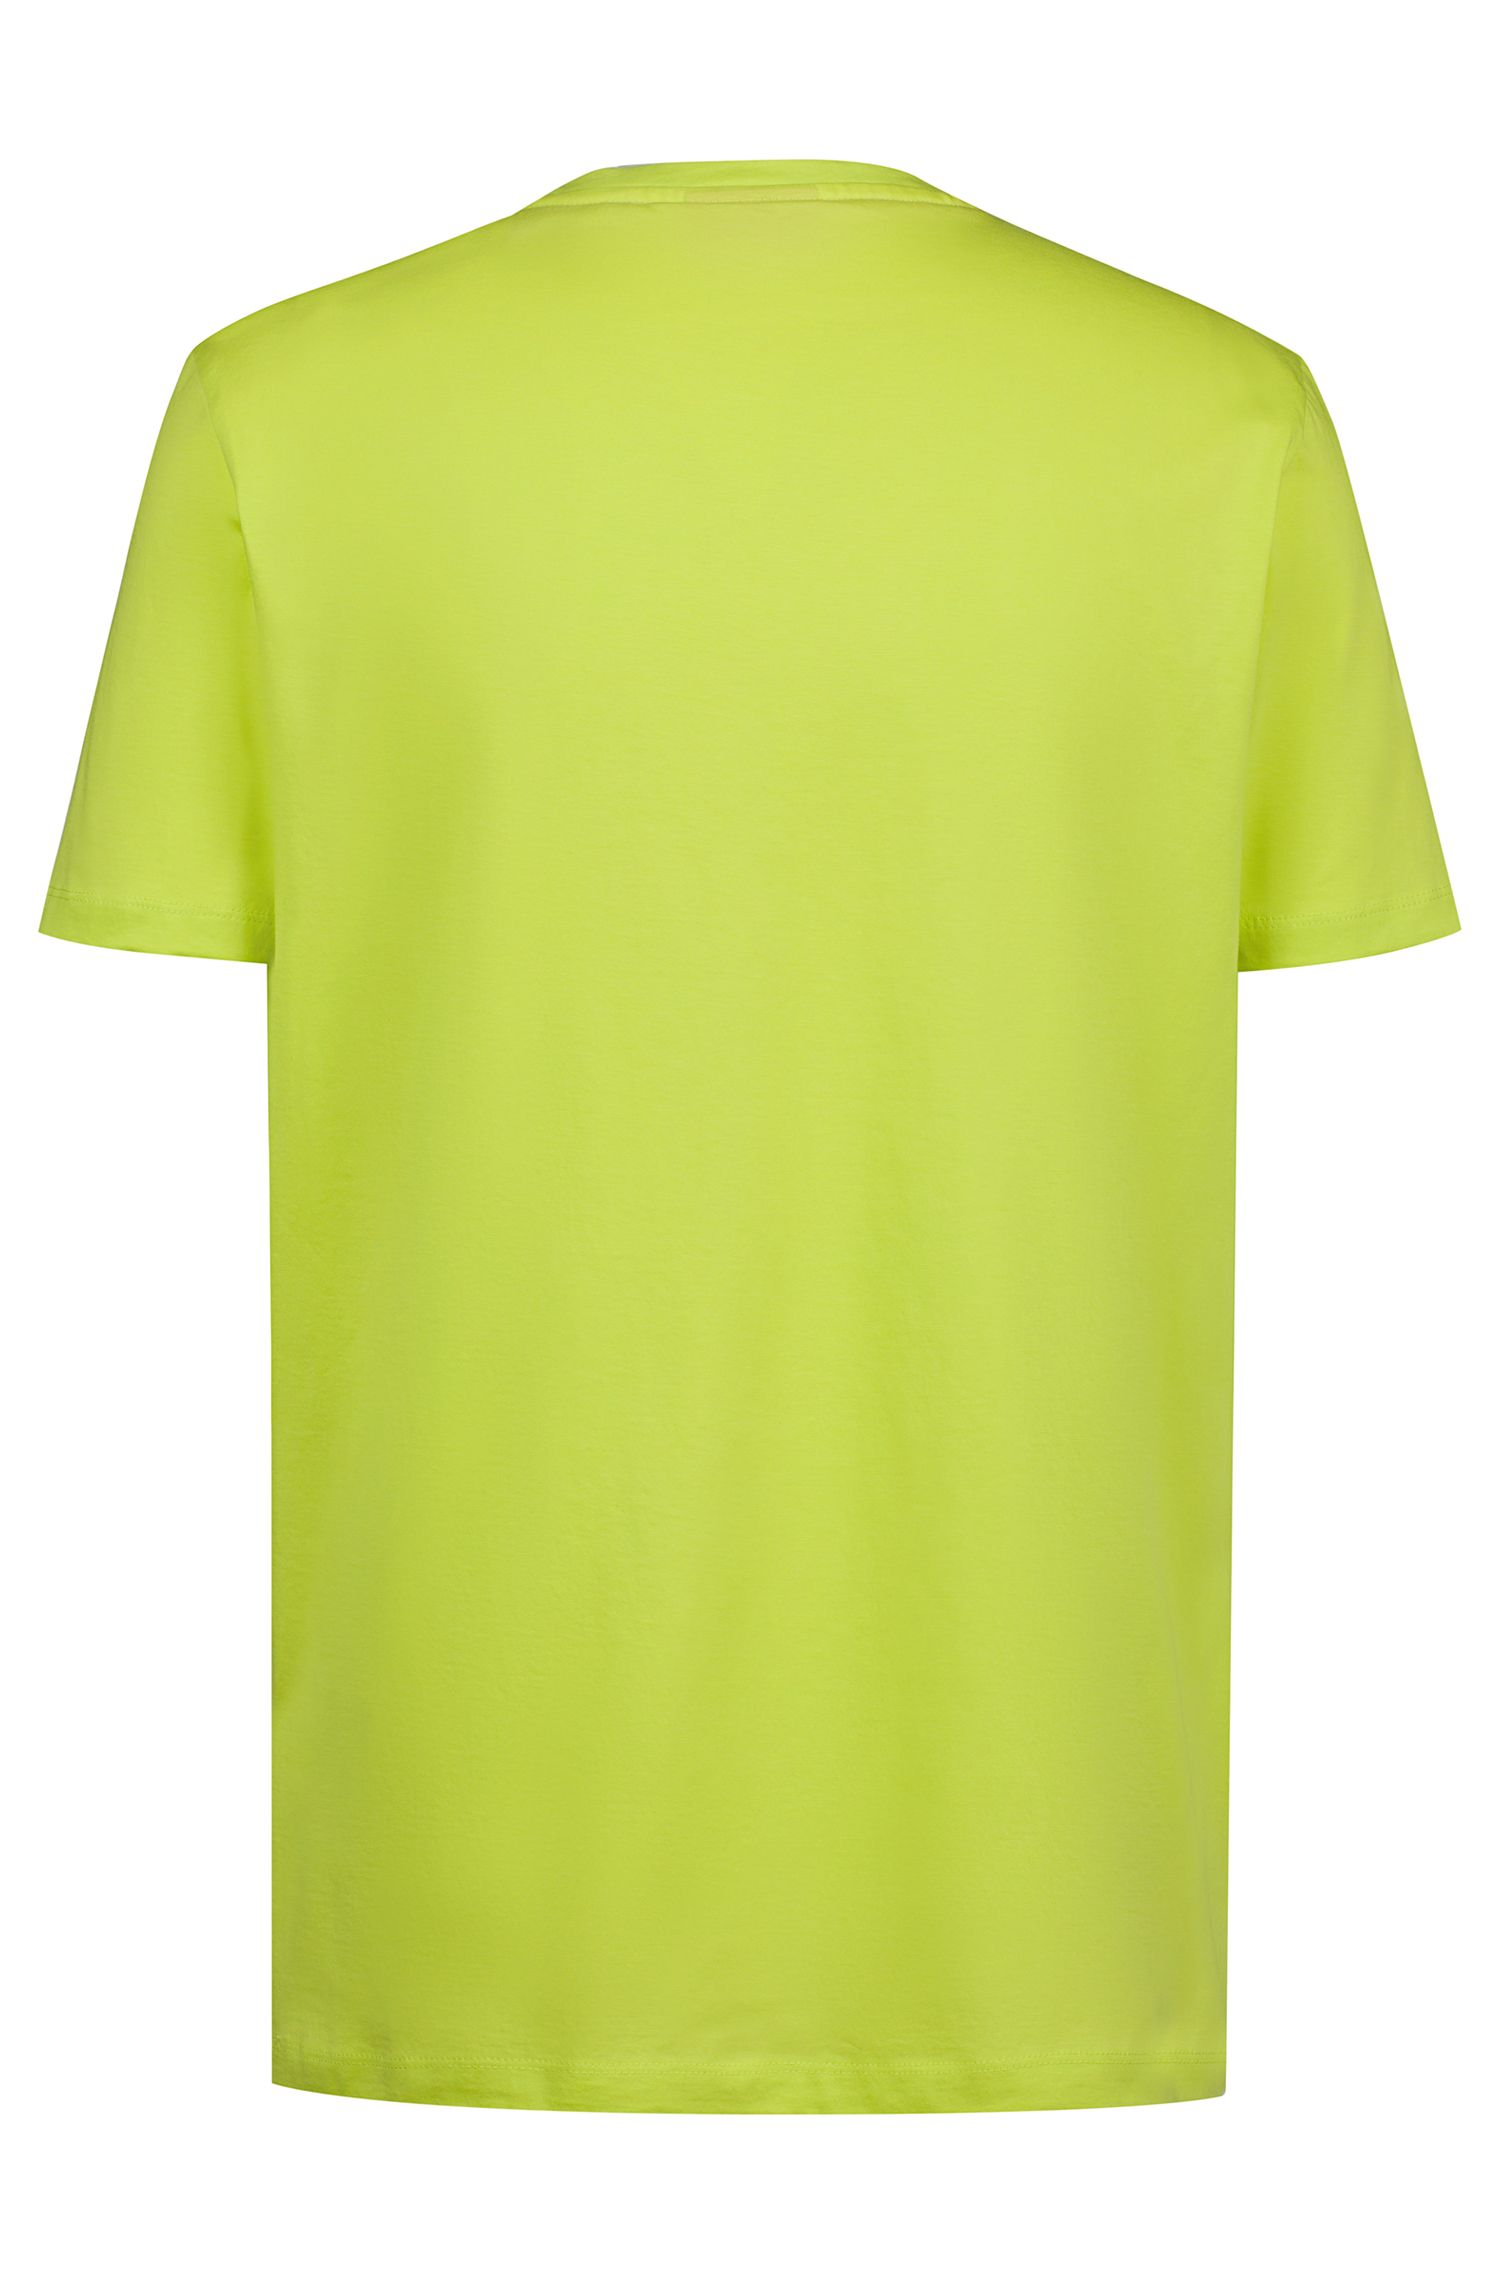 Regular-fit logo T-shirt in soft cotton, Yellow